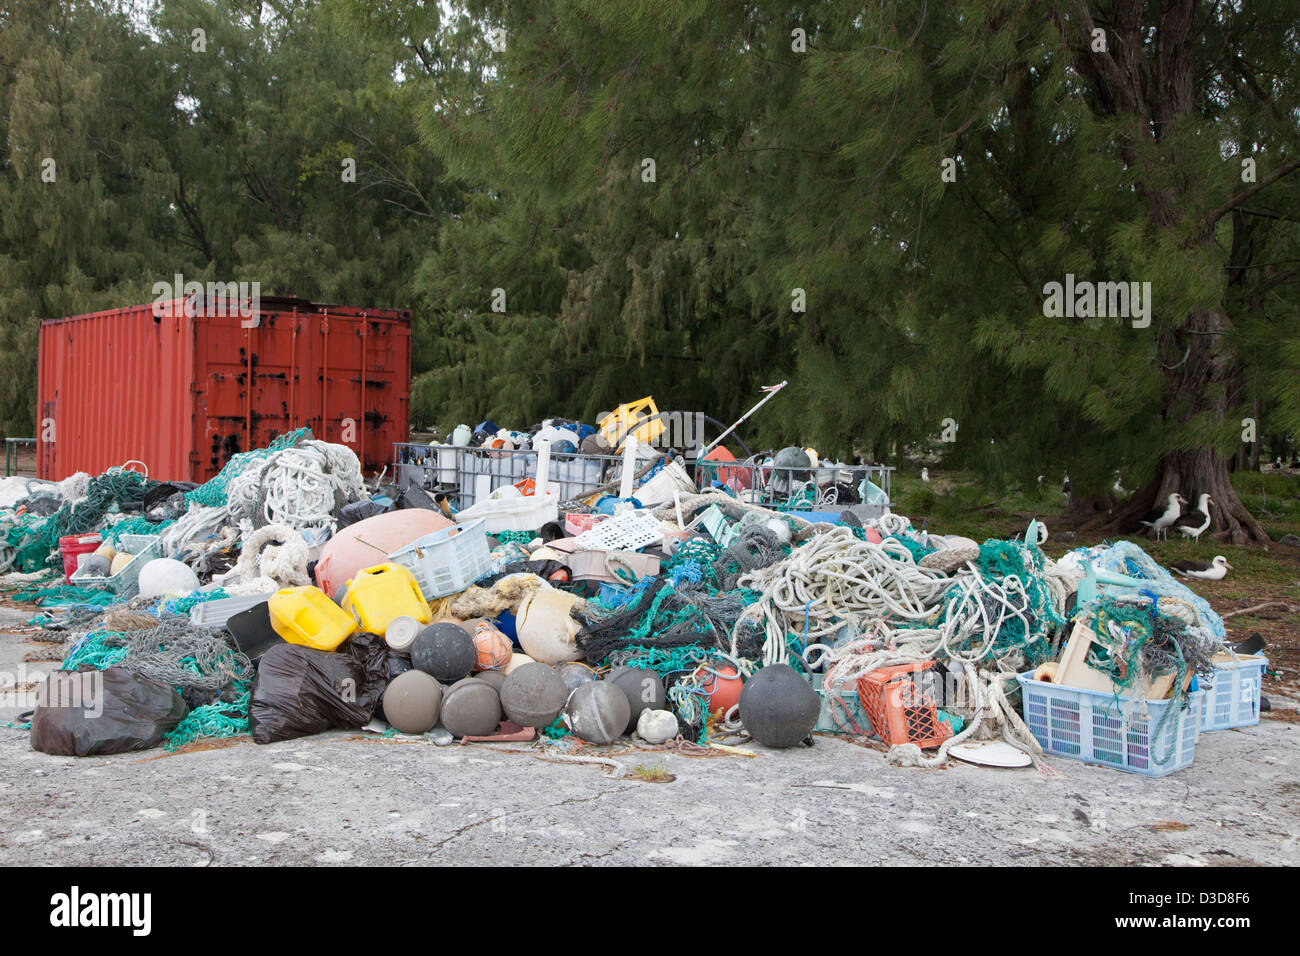 Marine debris brought to Midway Atoll by currents then collected to be shipped off island for recycling or disposal - Stock Image